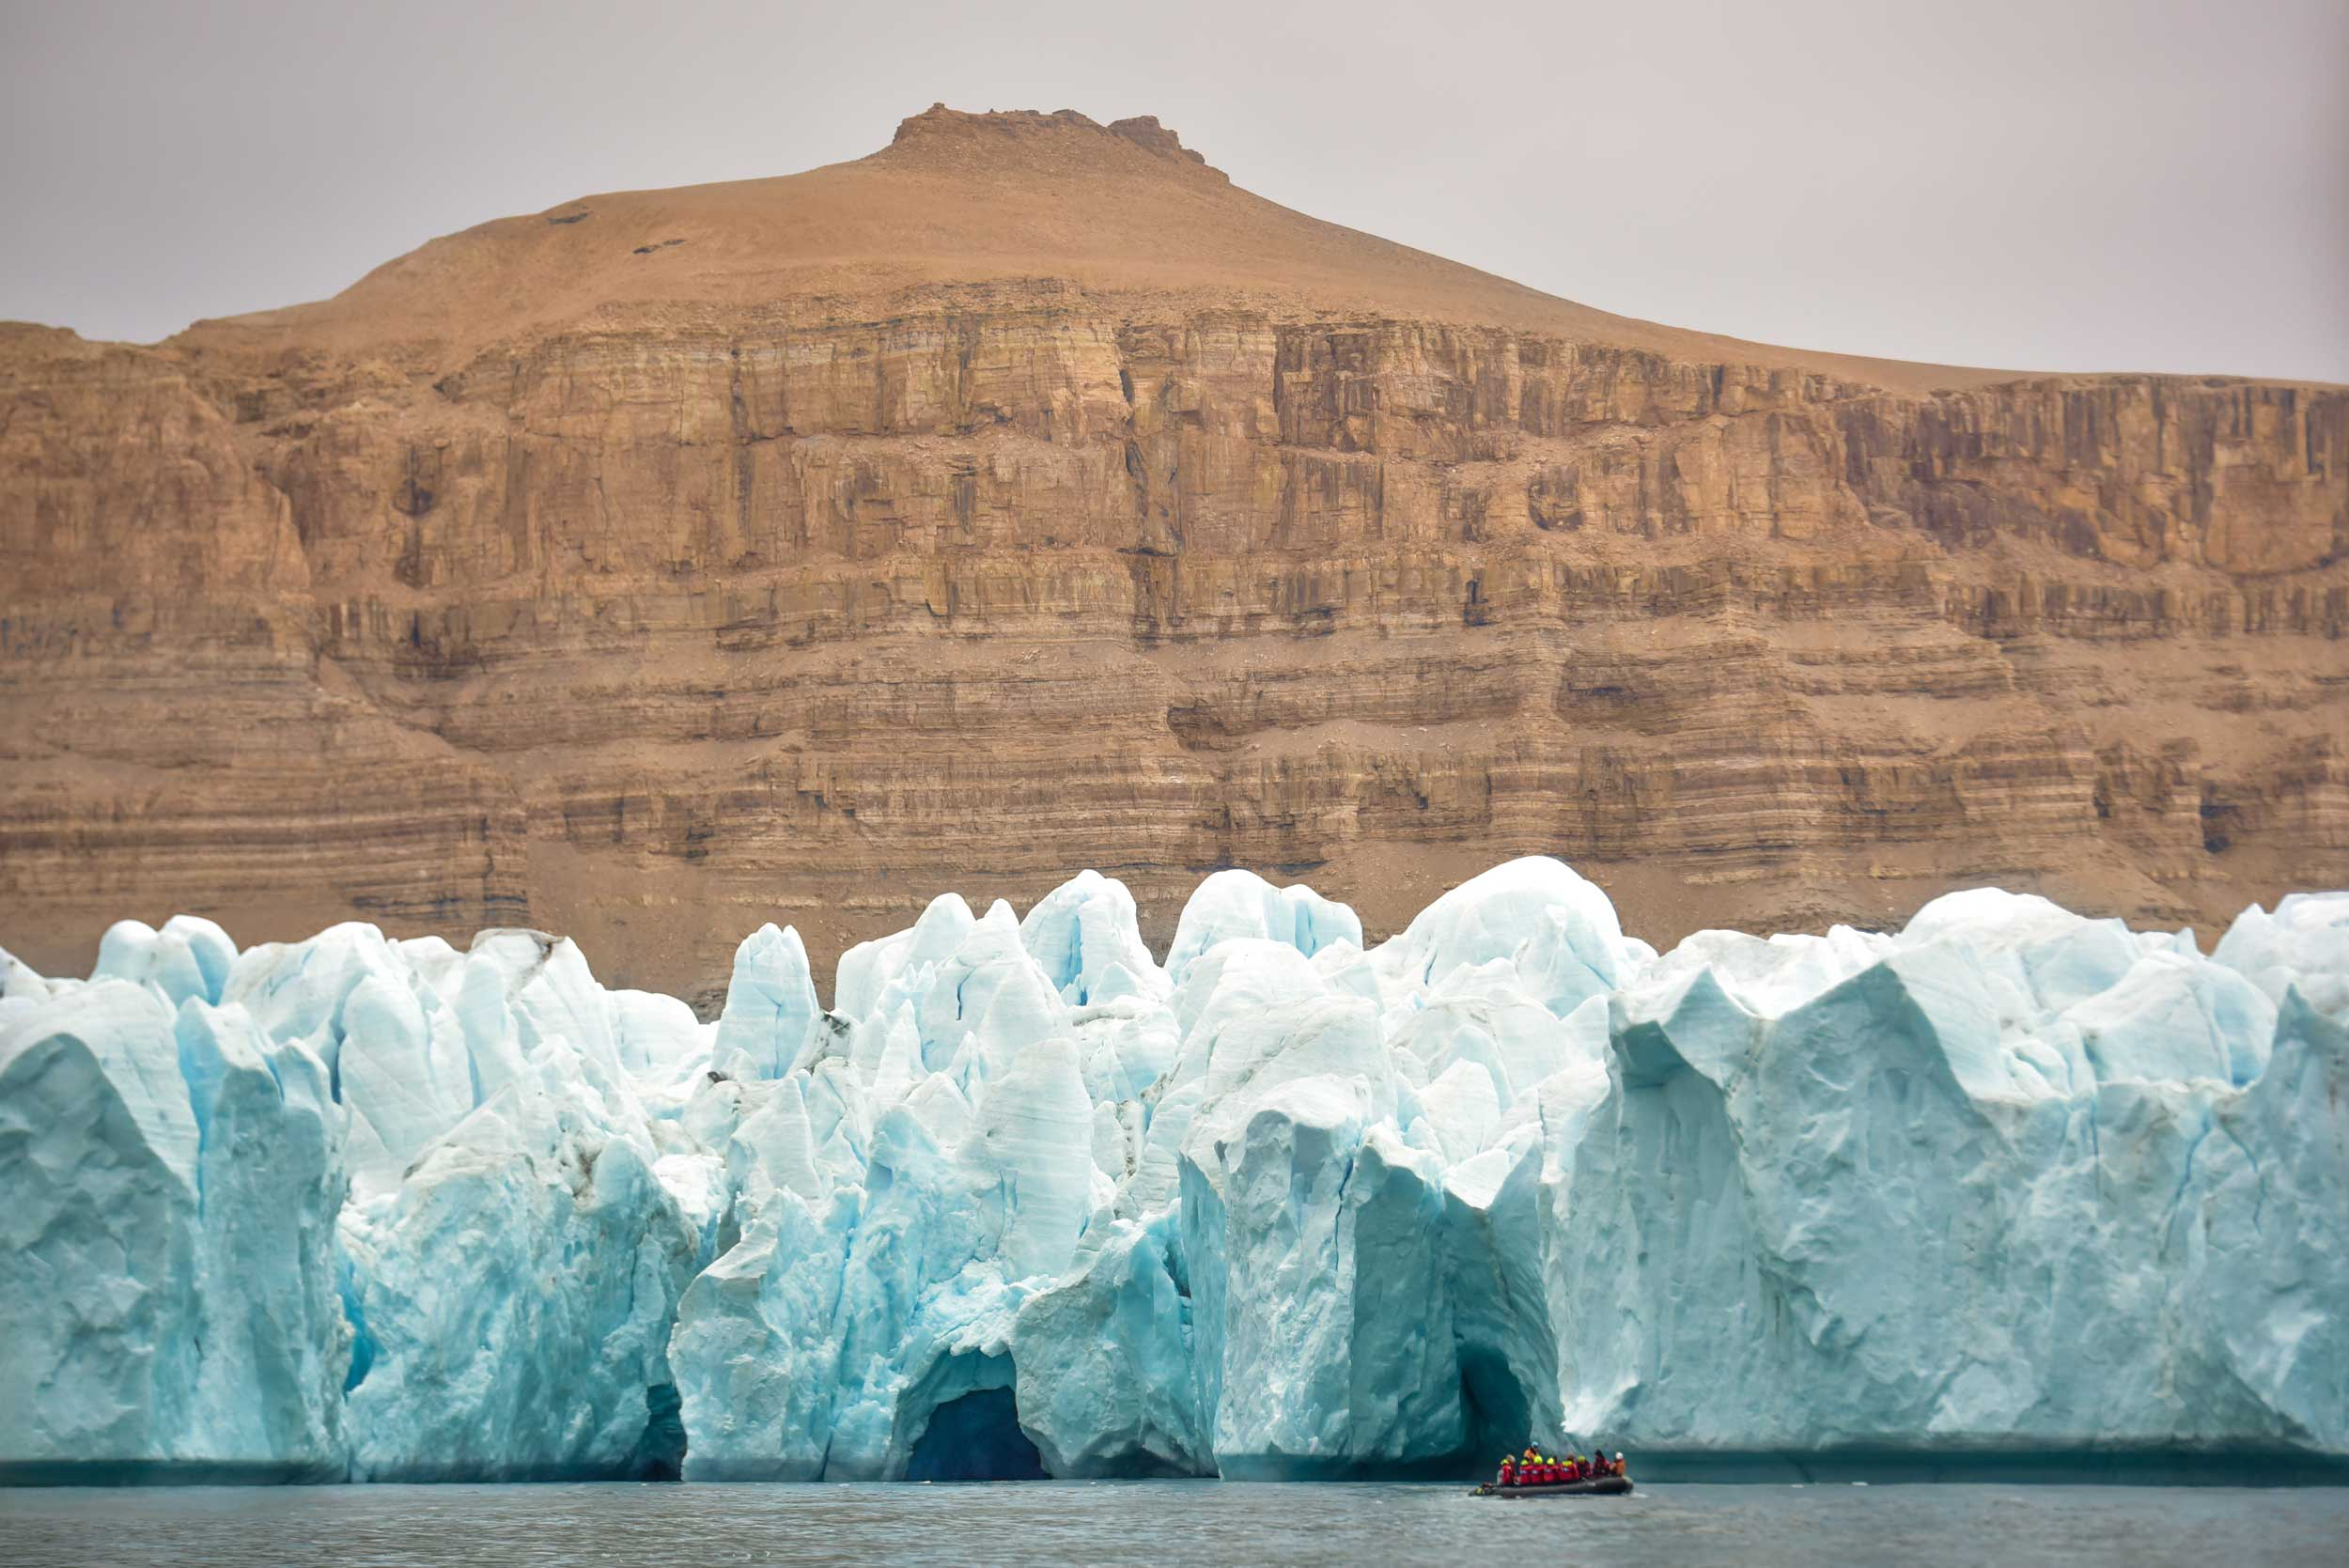 Large brown mountain with blue-white glacier in front of it